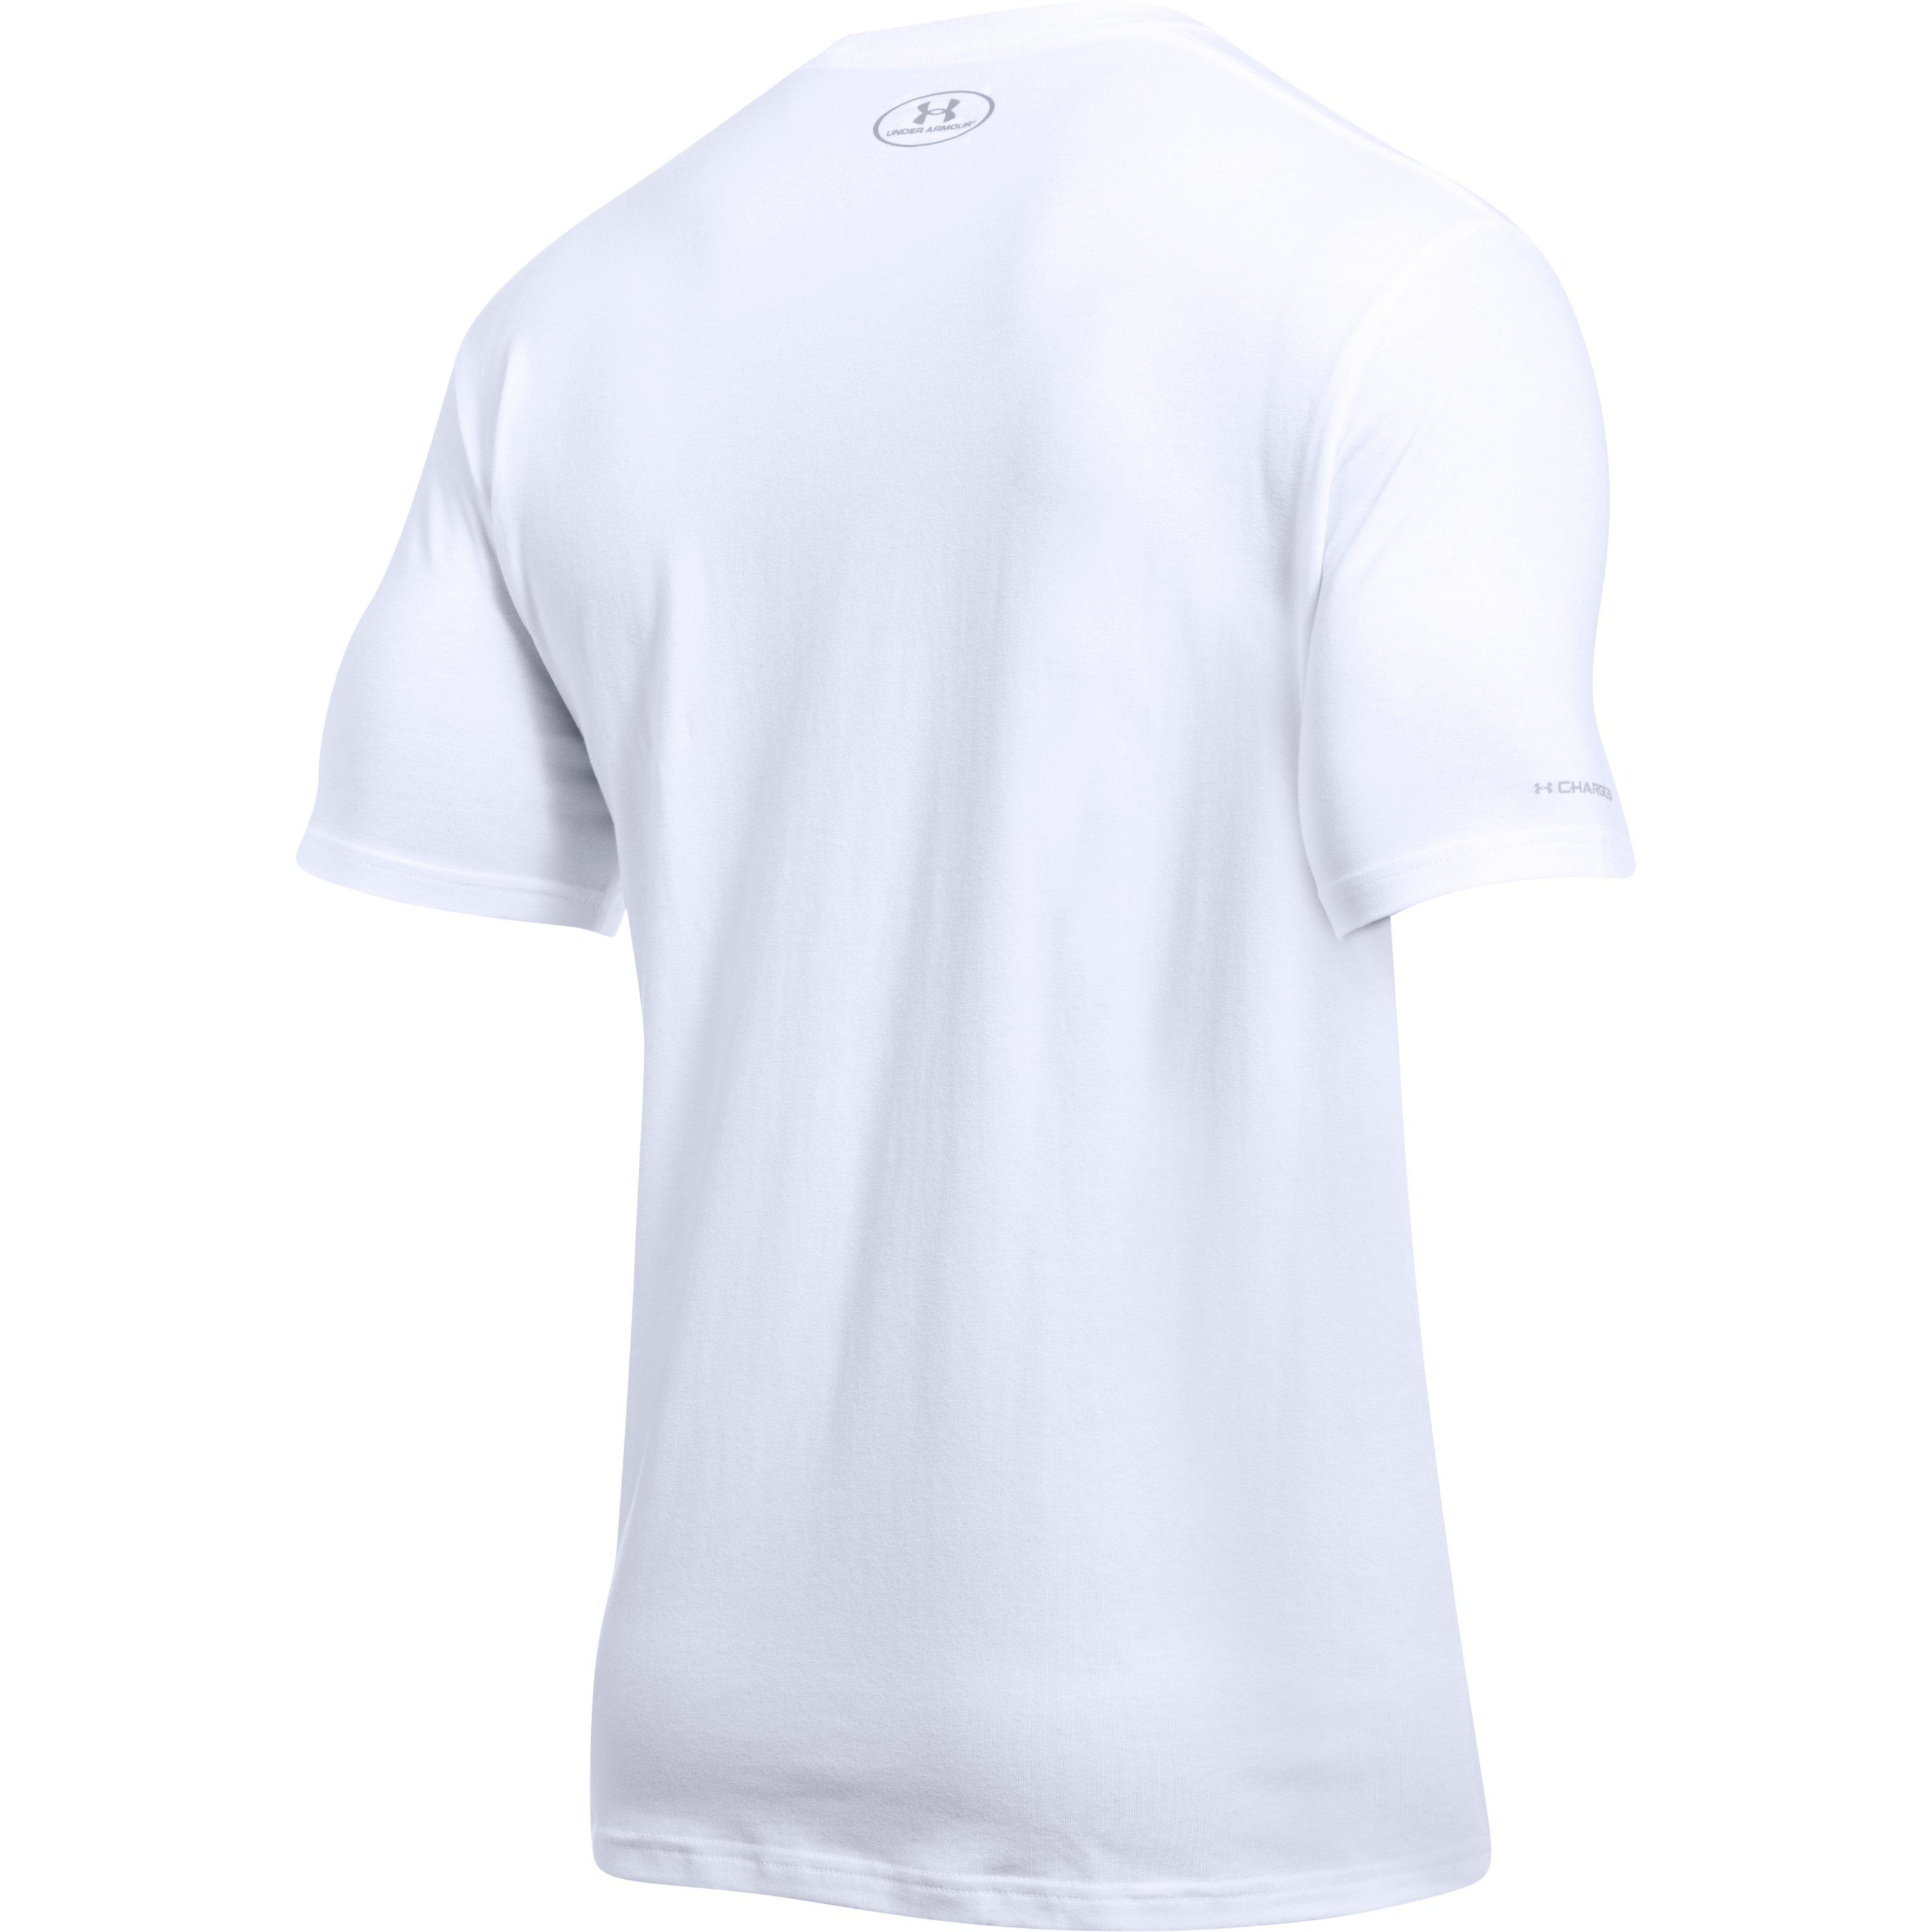 new product a0fa3 c5051 Under Armour White Men's New York Yankees 4th Of July T-shirt for men